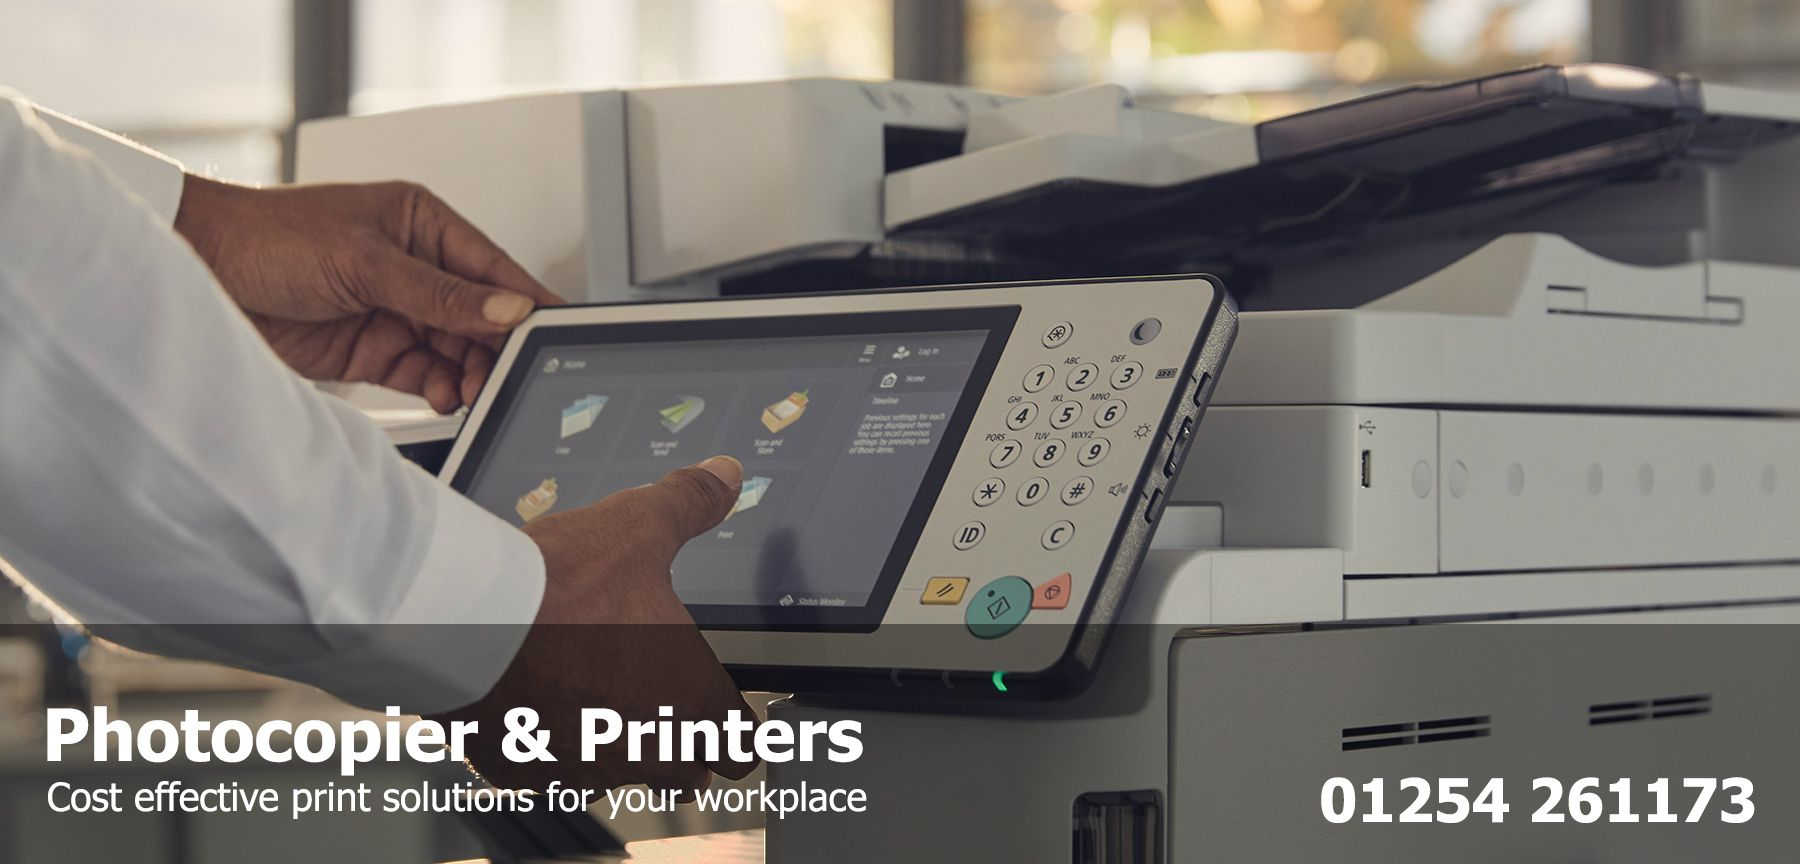 office photocopier supplier Cheshire - photocopier lease rental printer cost per copy service contract